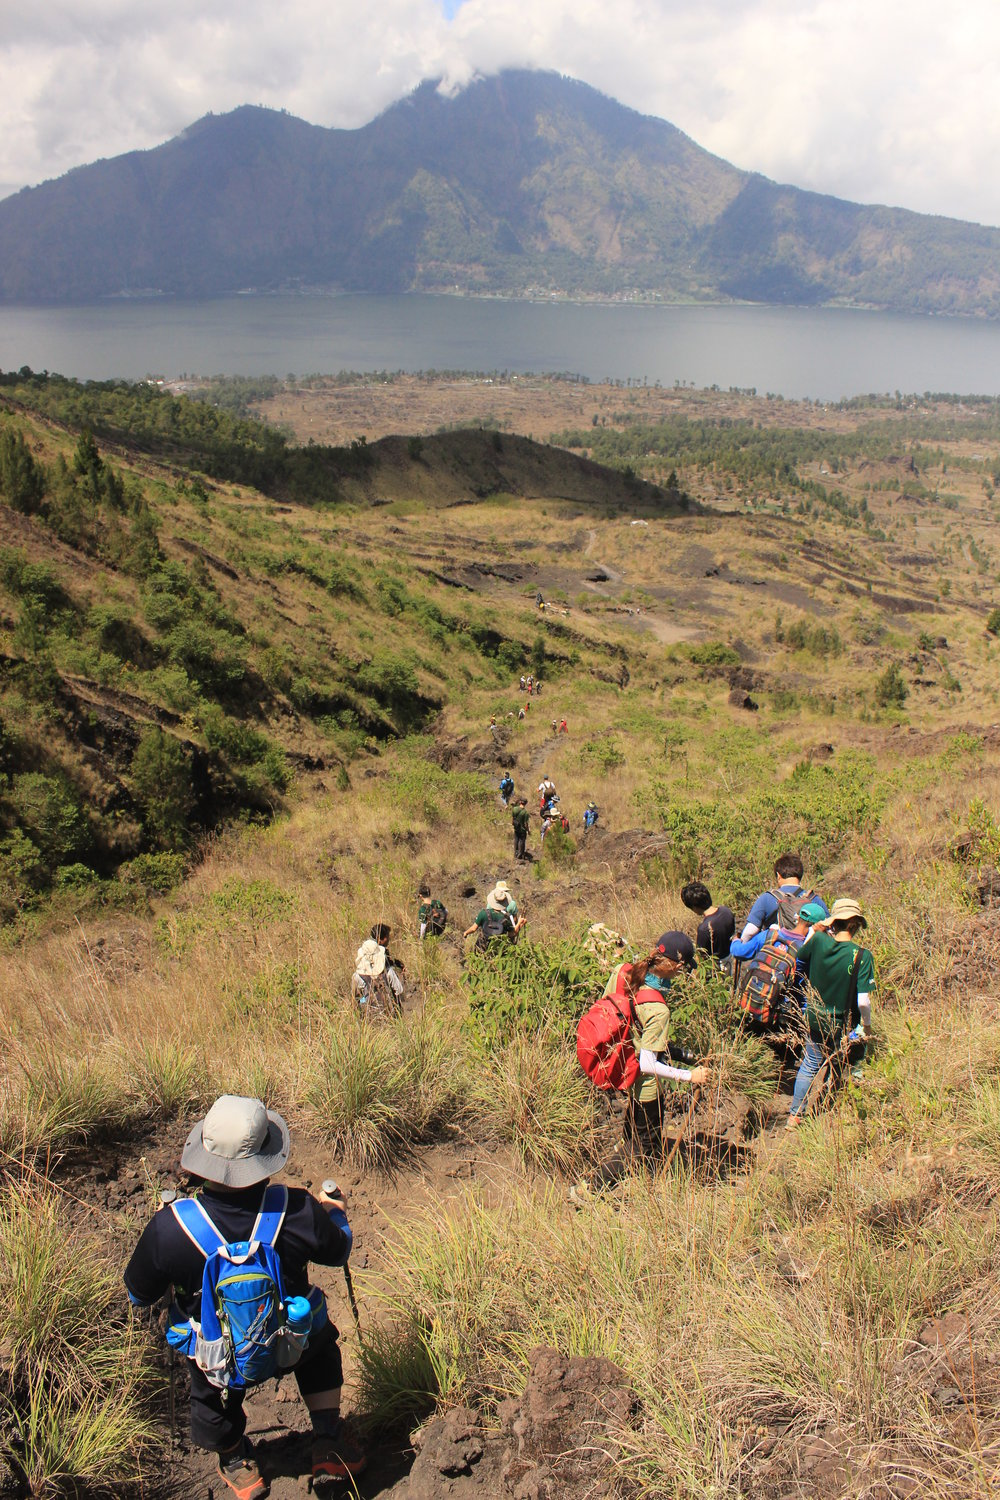 Bali, Mt Batur Trek, Trekking, Walking, Students, View, Scenery, Mountain, Lake GIST - Caltech.JPG